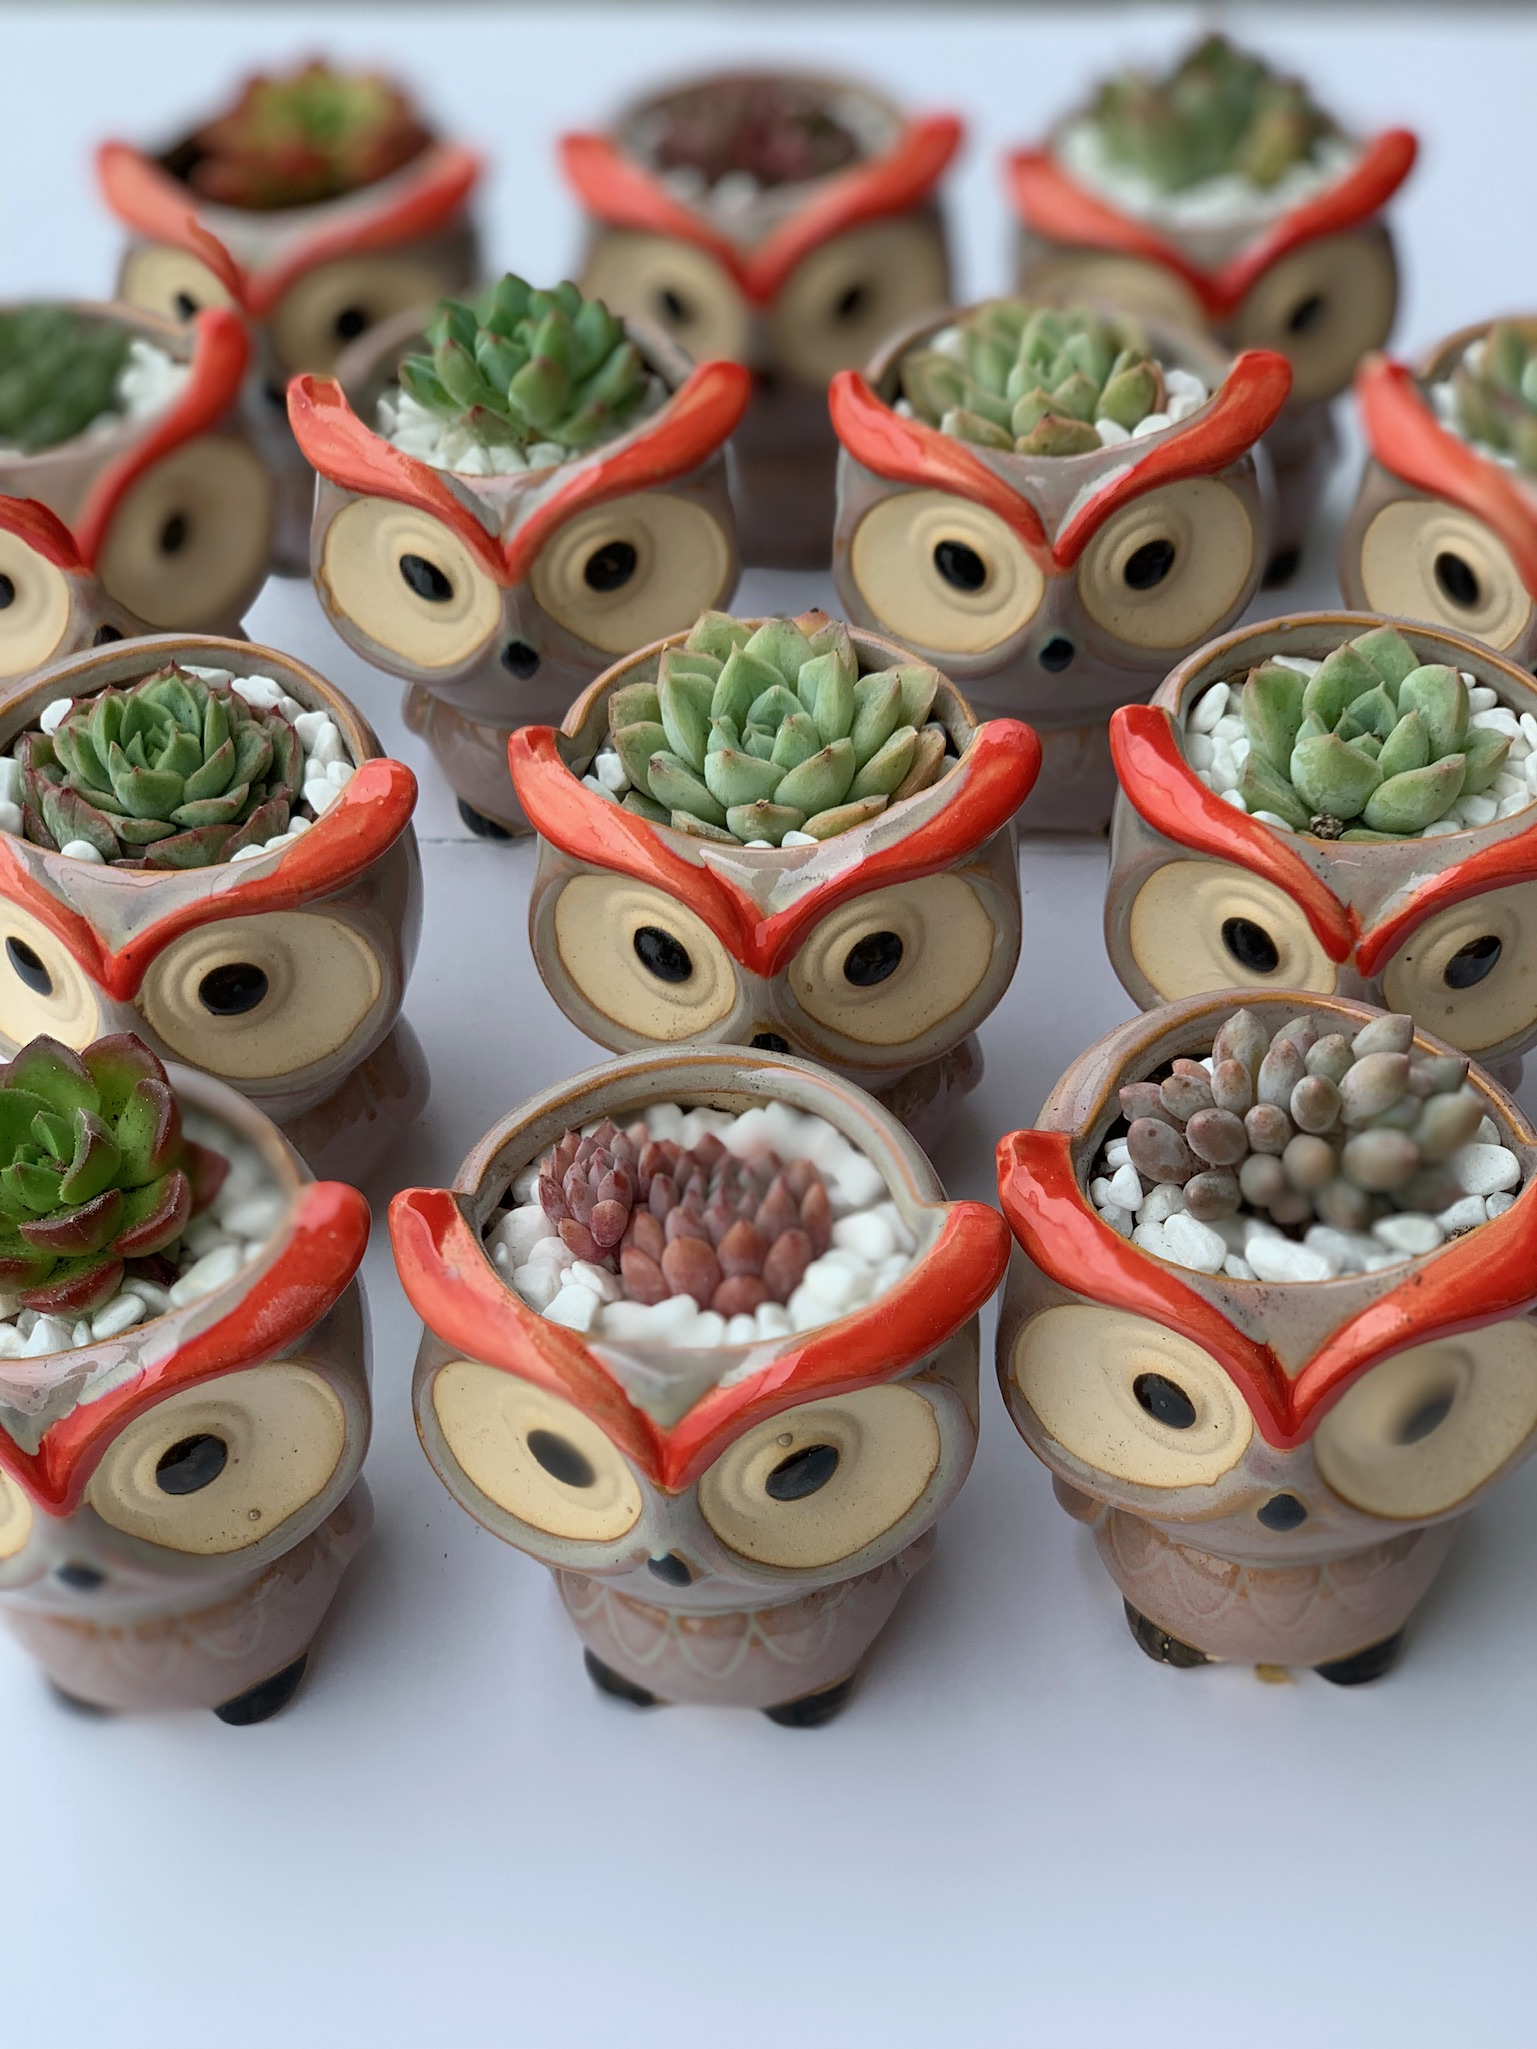 Green Thumb X Owl Pots